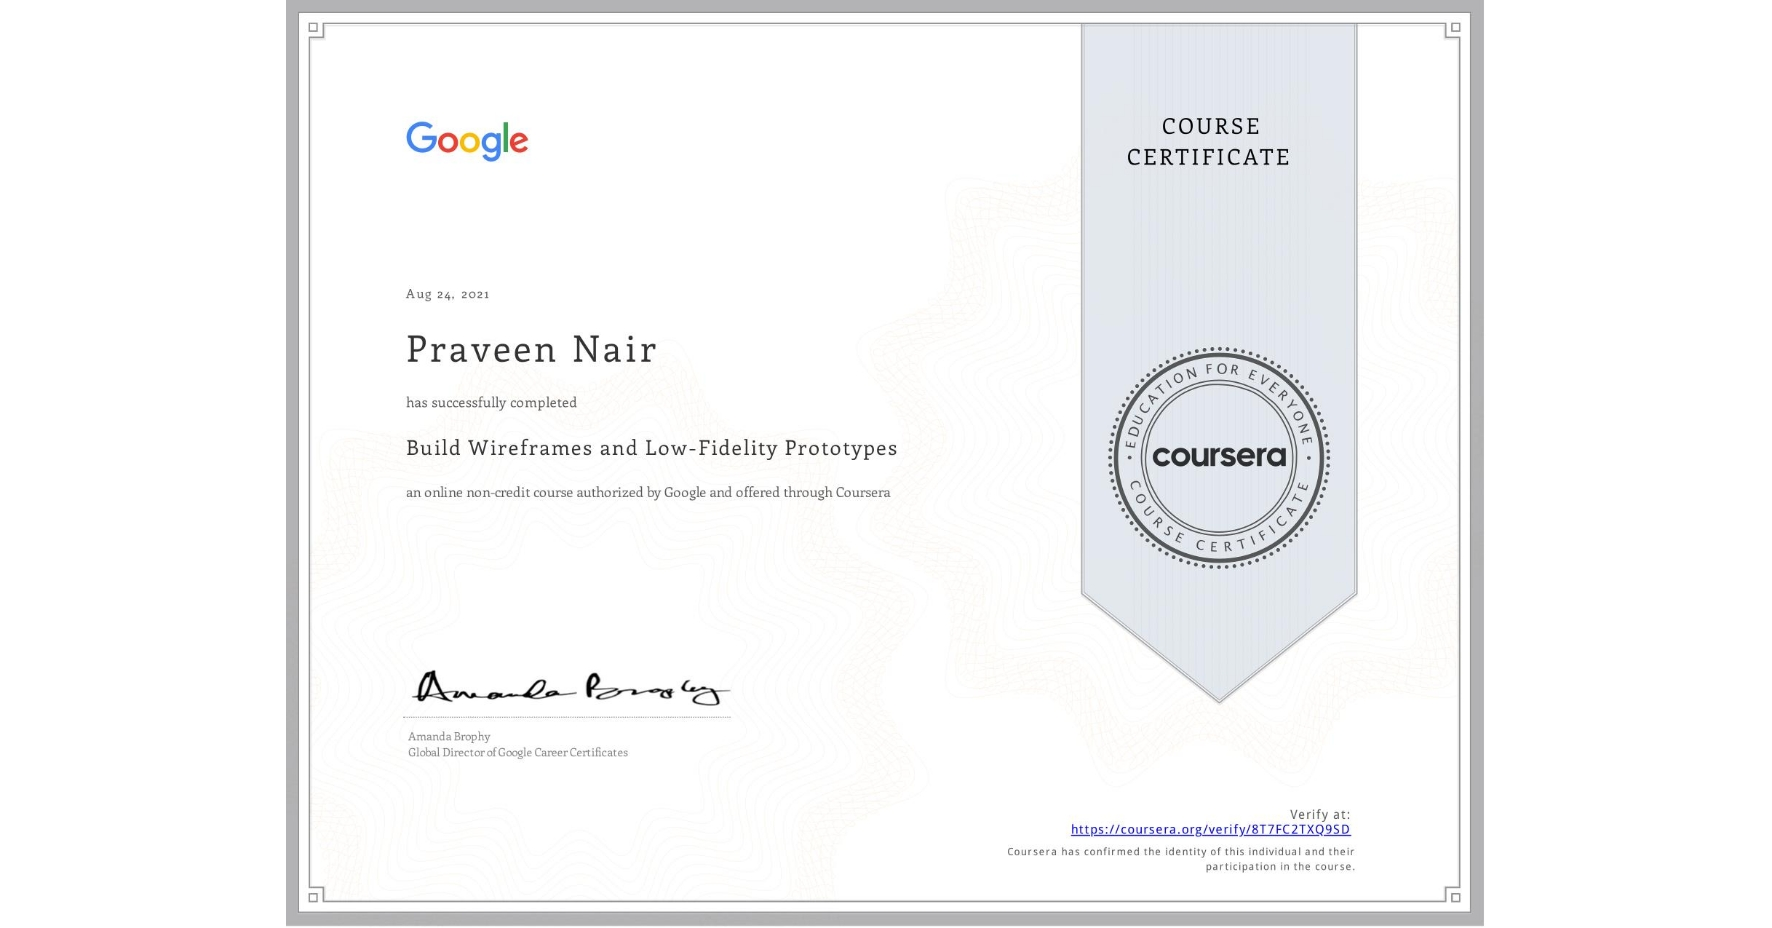 View certificate for Praveen Nair, Build Wireframes and Low-Fidelity Prototypes, an online non-credit course authorized by Google and offered through Coursera